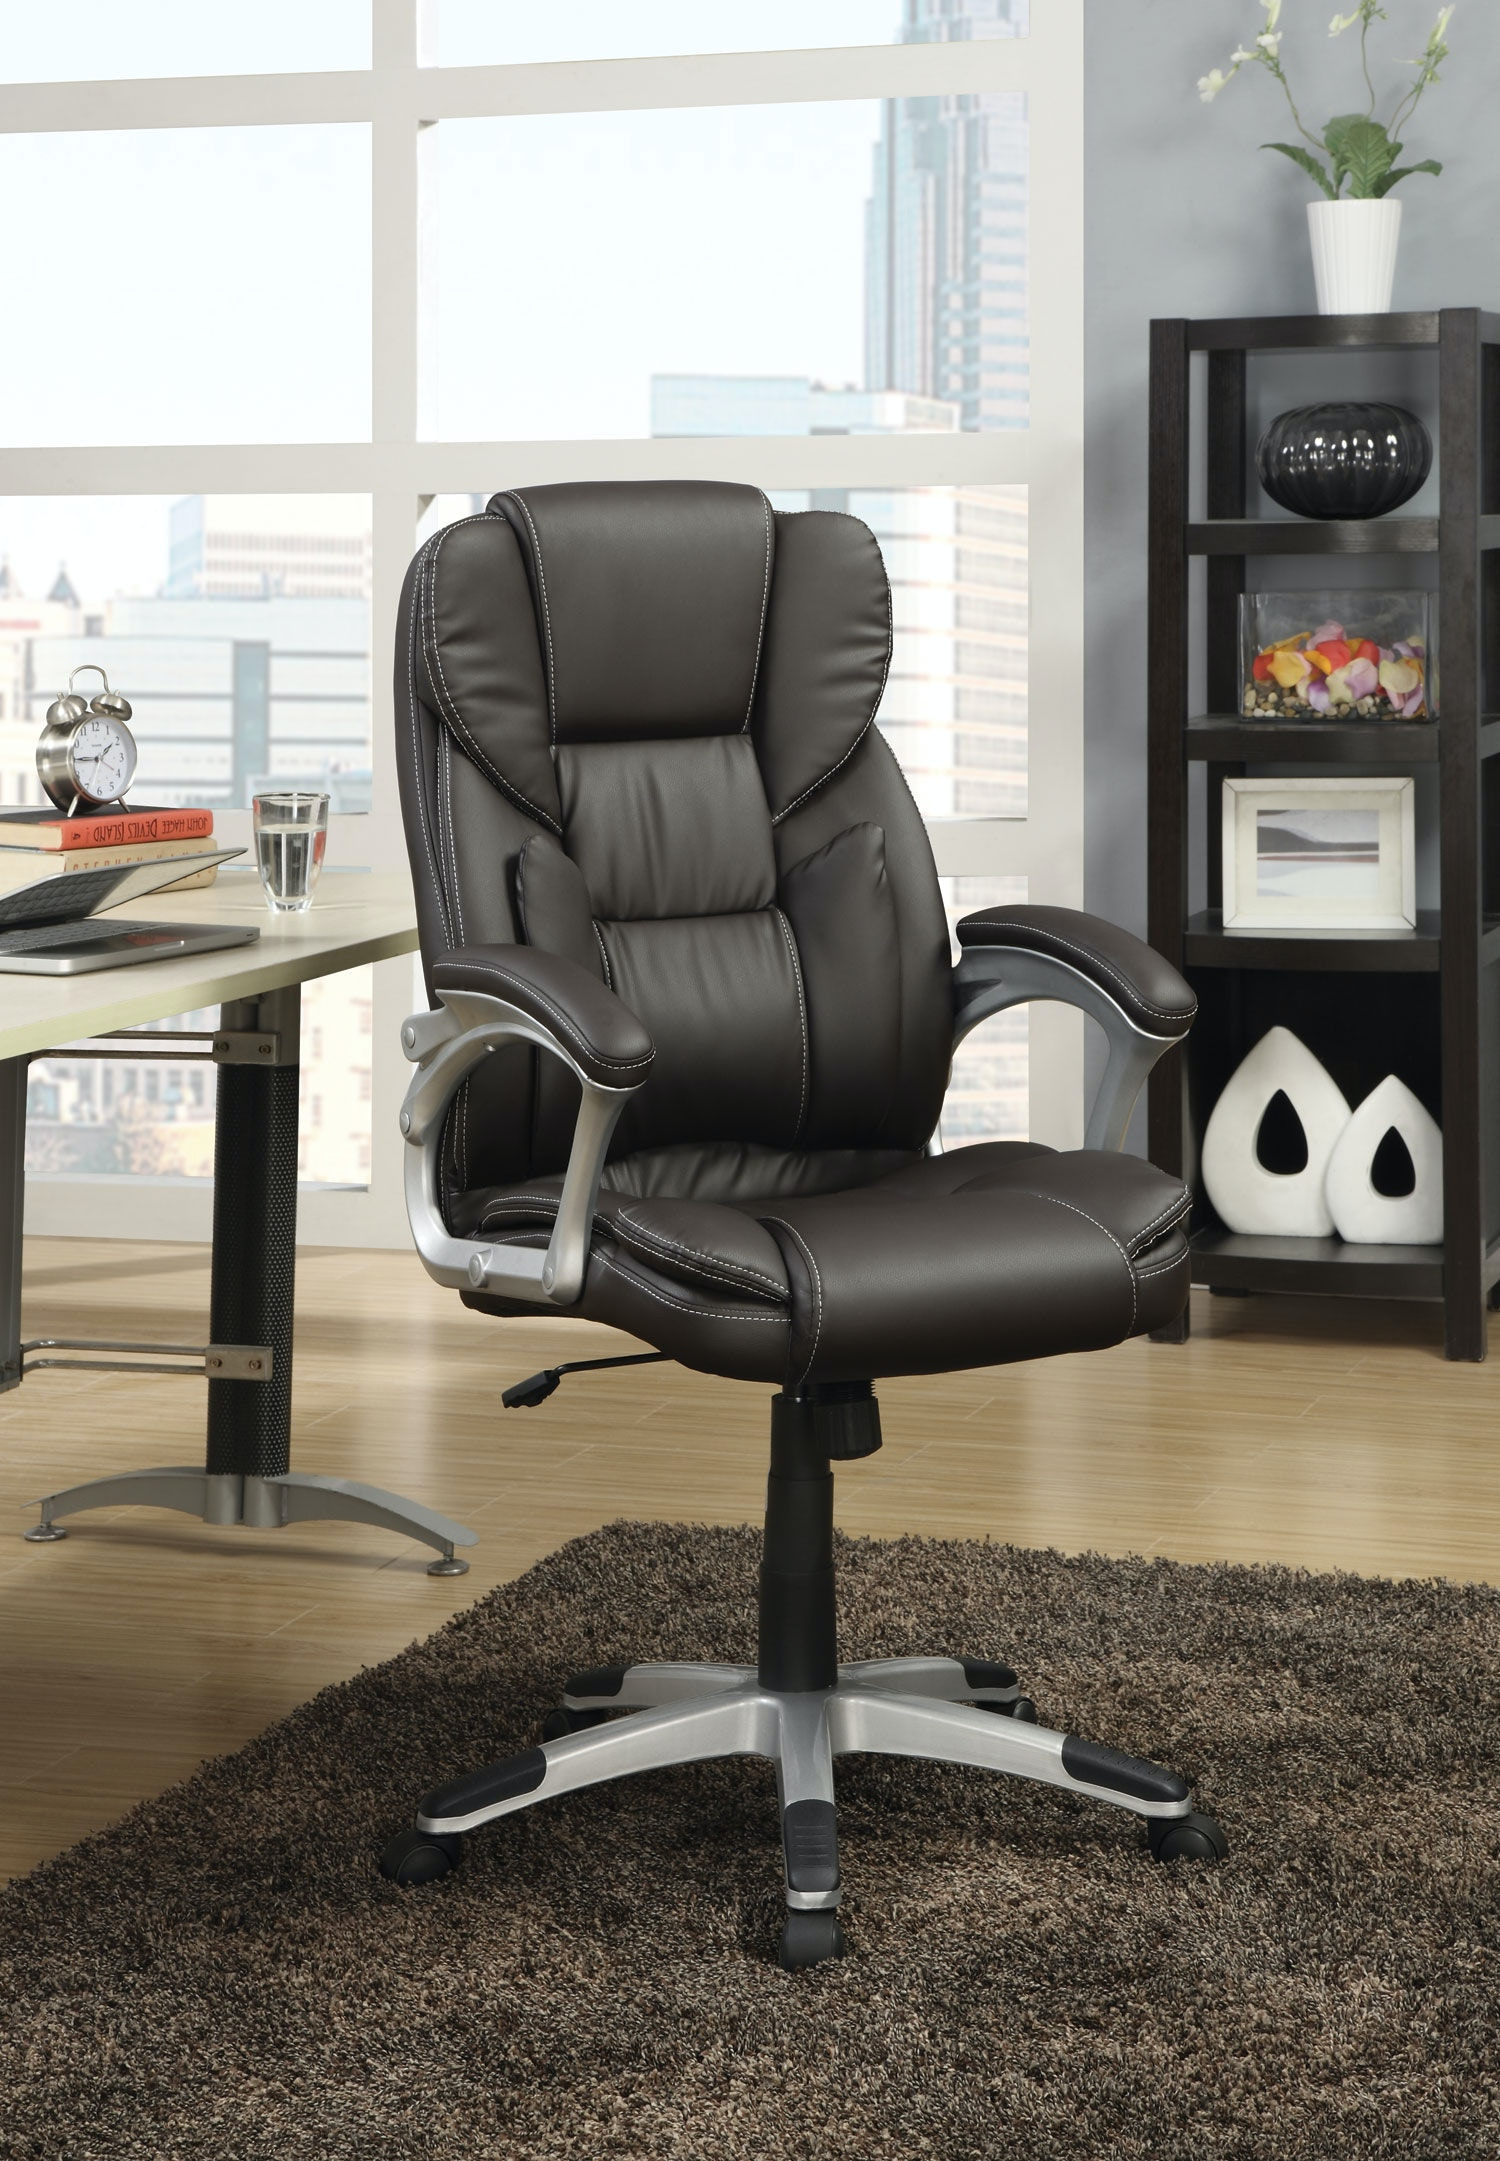 High Quality Coaster Home Office Office Chair 800045   Furniture Kingdom   Gainesville,  FL